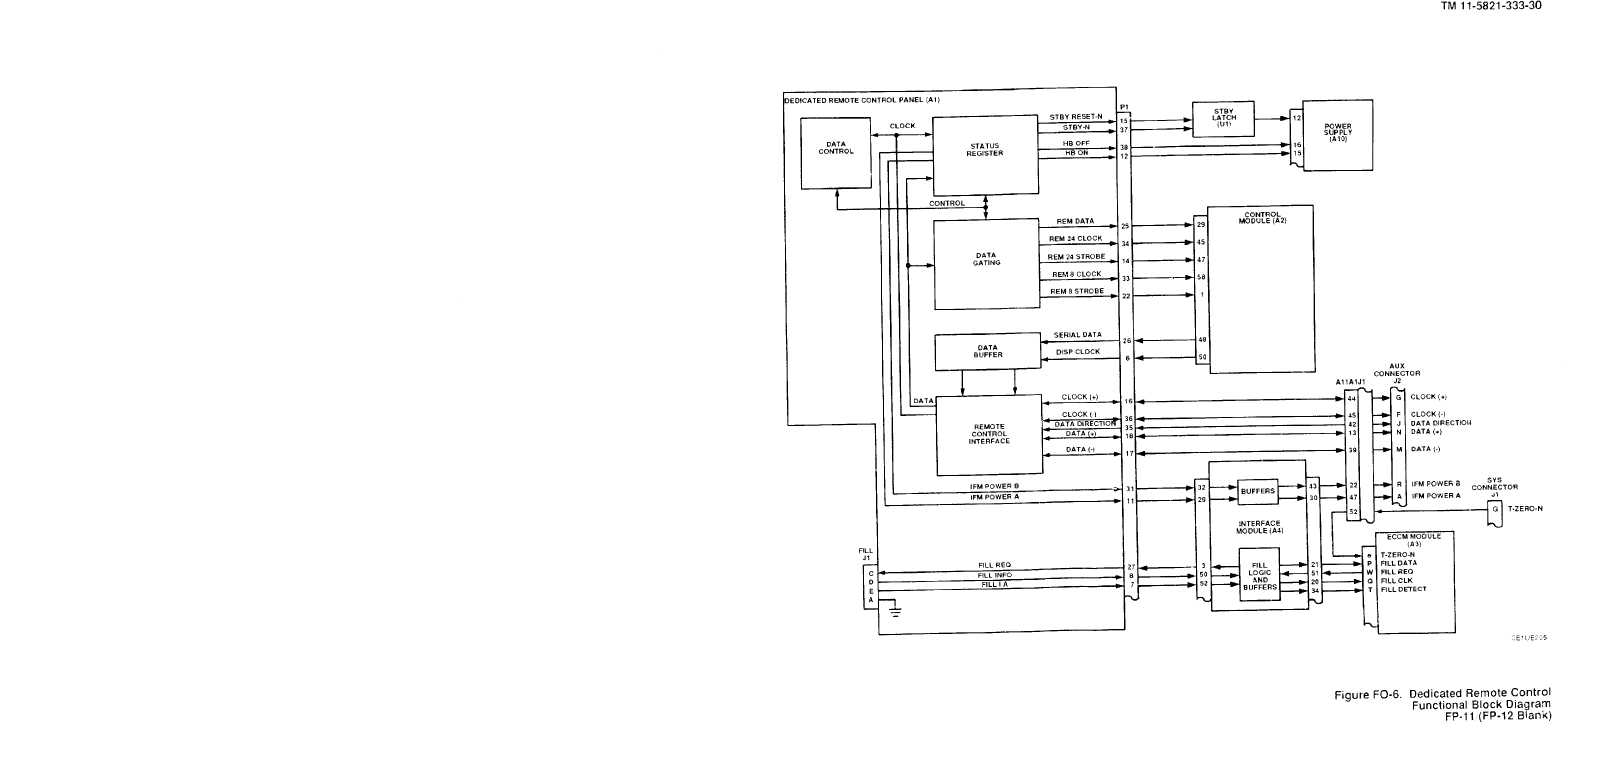 Figure Fo 6 Dedicated Remote Control Functional Block Diagram